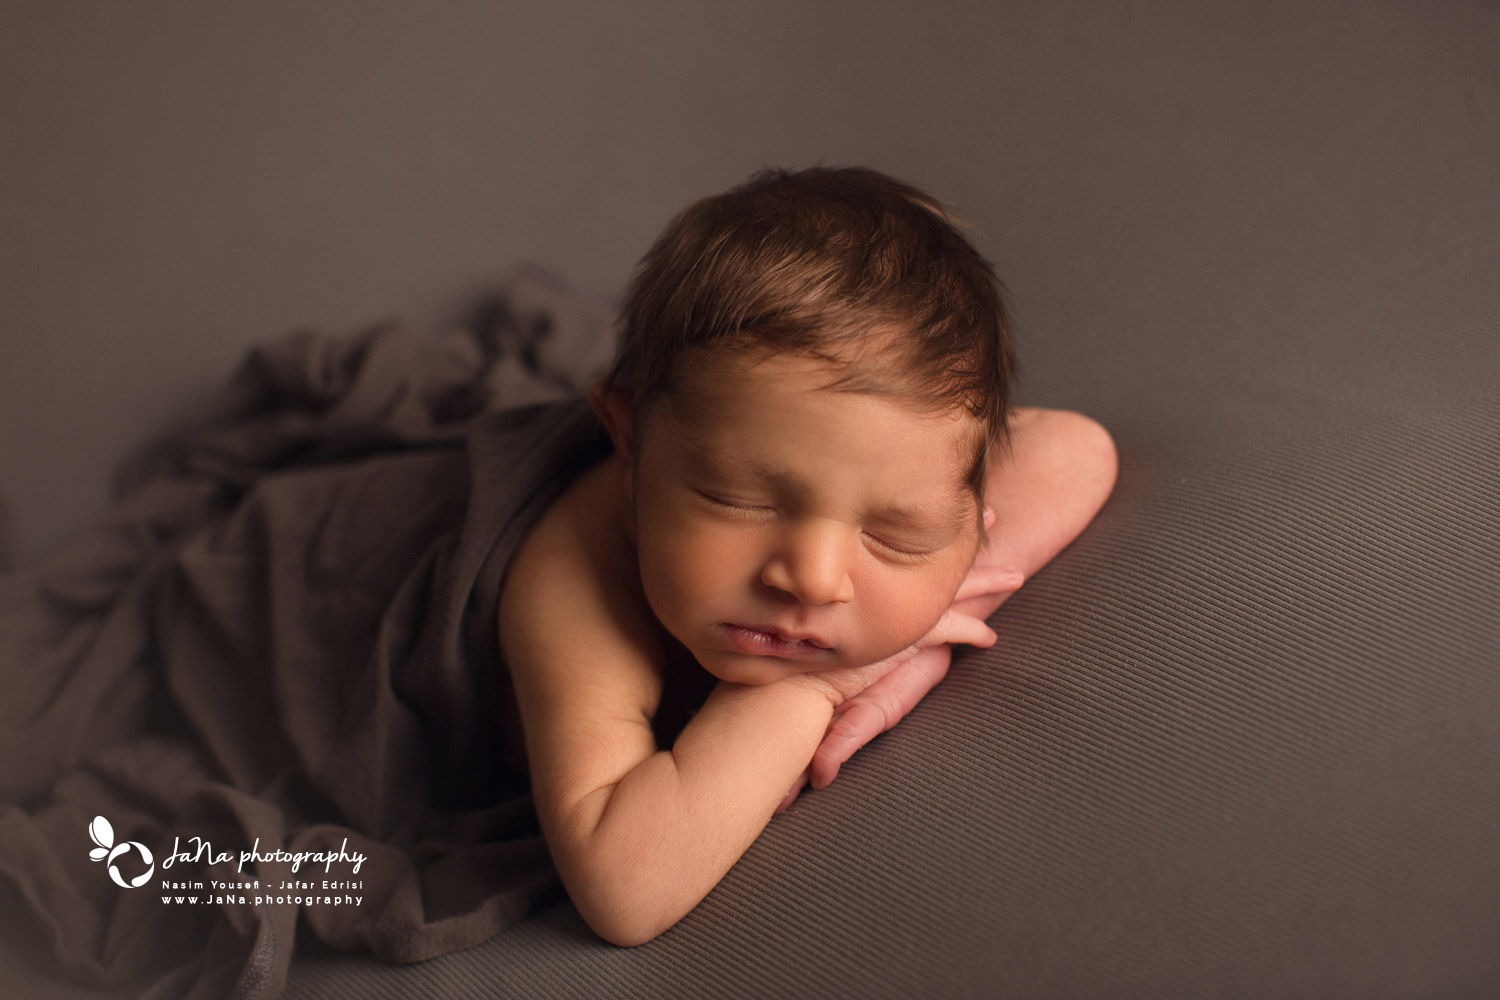 Newborn photography Vancouver | James